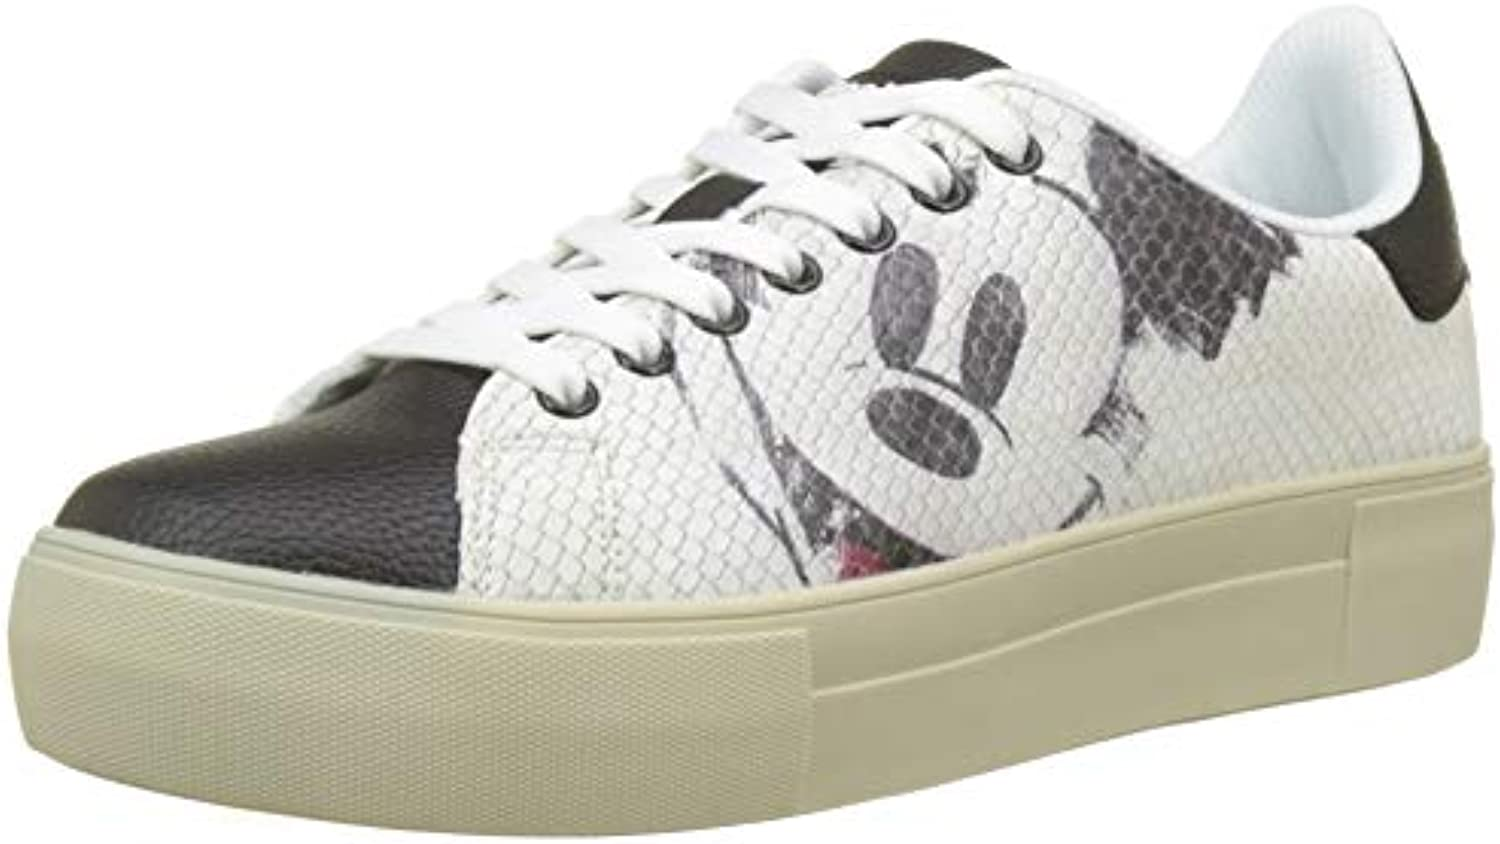 Desigual Shoes_Star Mickey, Mickey, Mickey, Baskets Basses Femme 6f9539